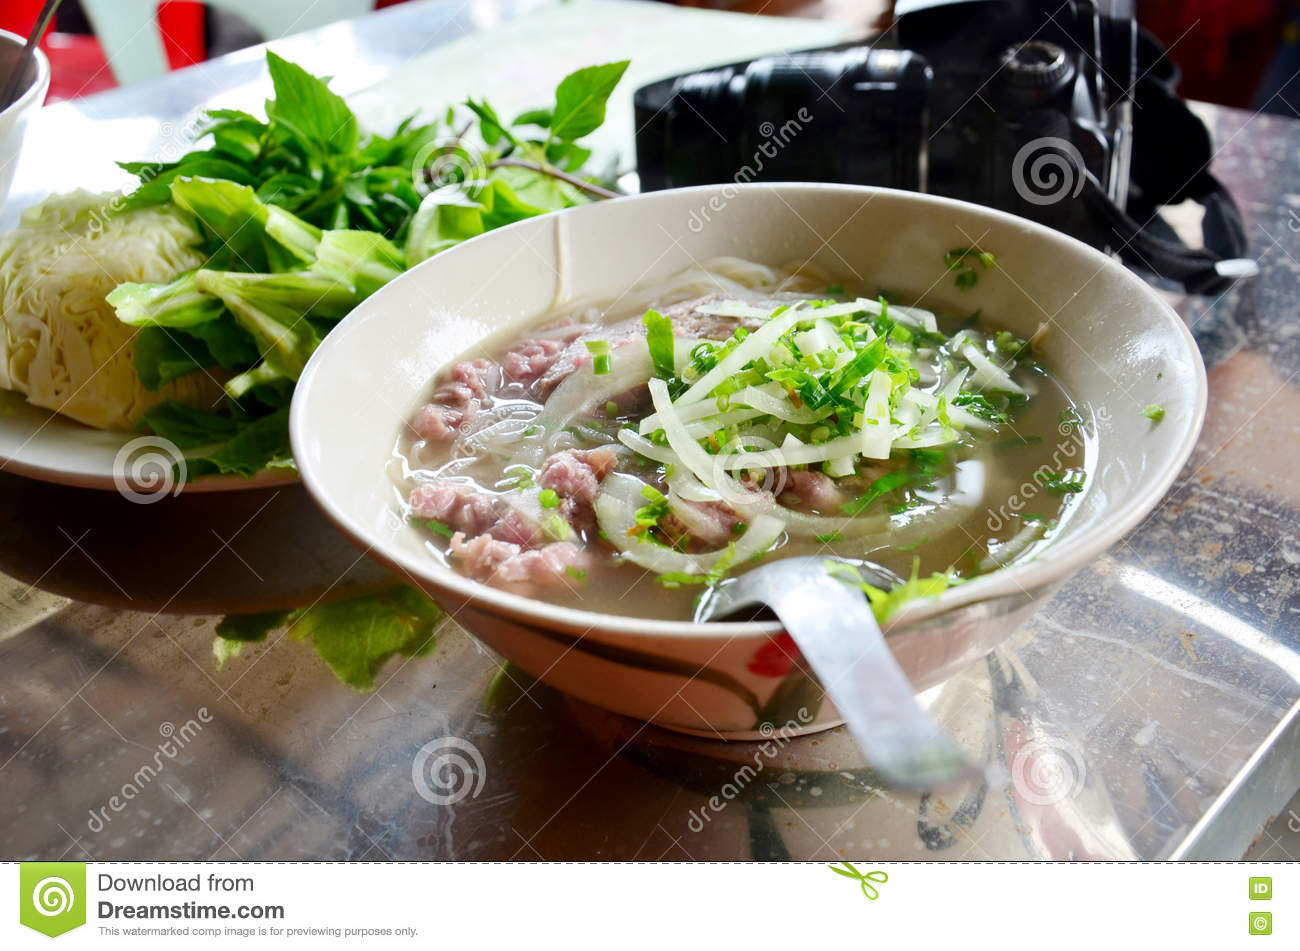 Noodle soup vietnam style vietnamese called Pho on the table in